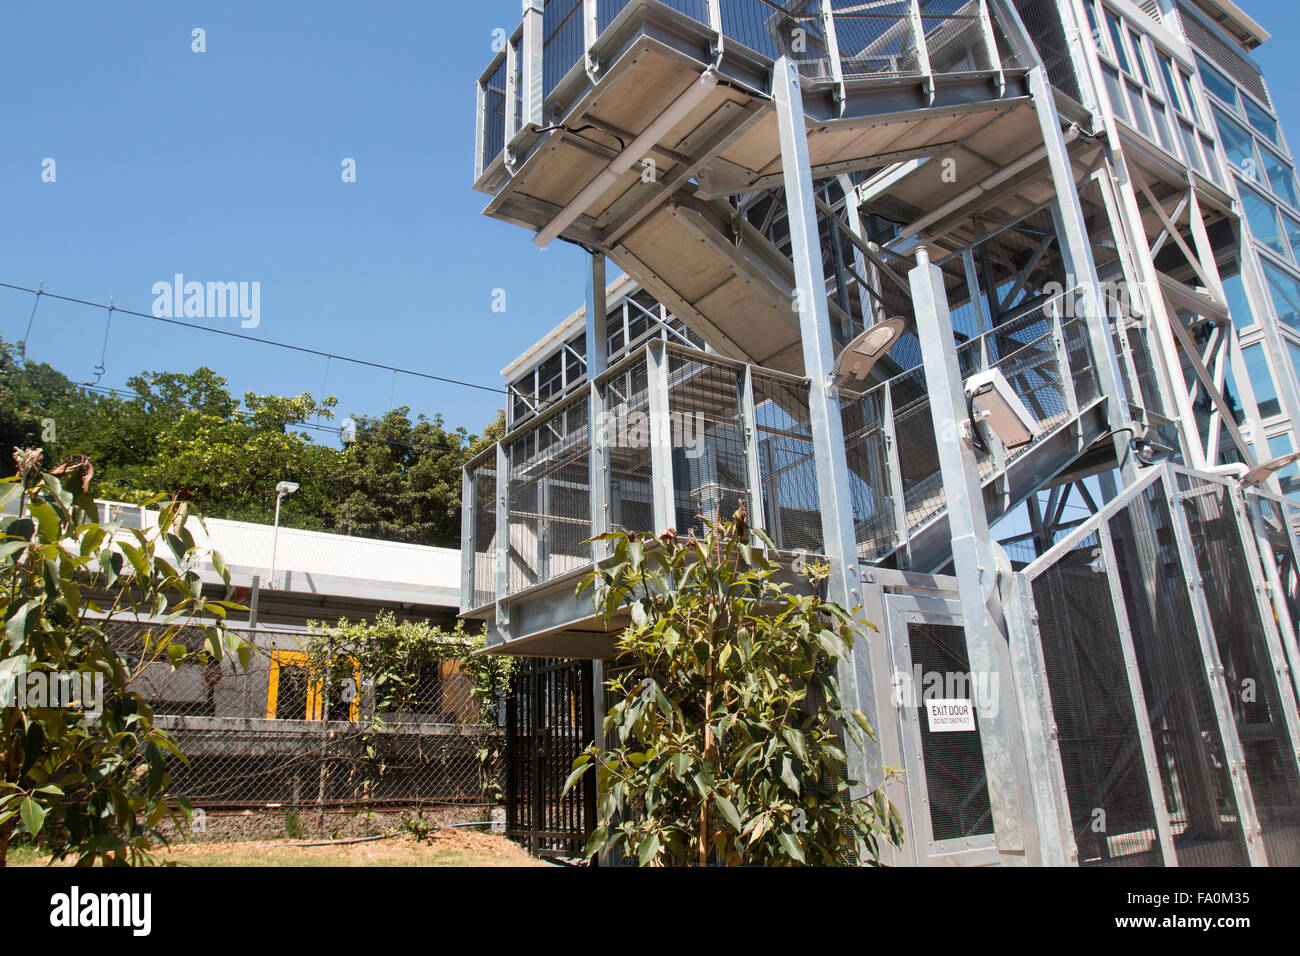 lift structure at a Sydney train station to allow disabled access to the platforms,australia Stock Photo